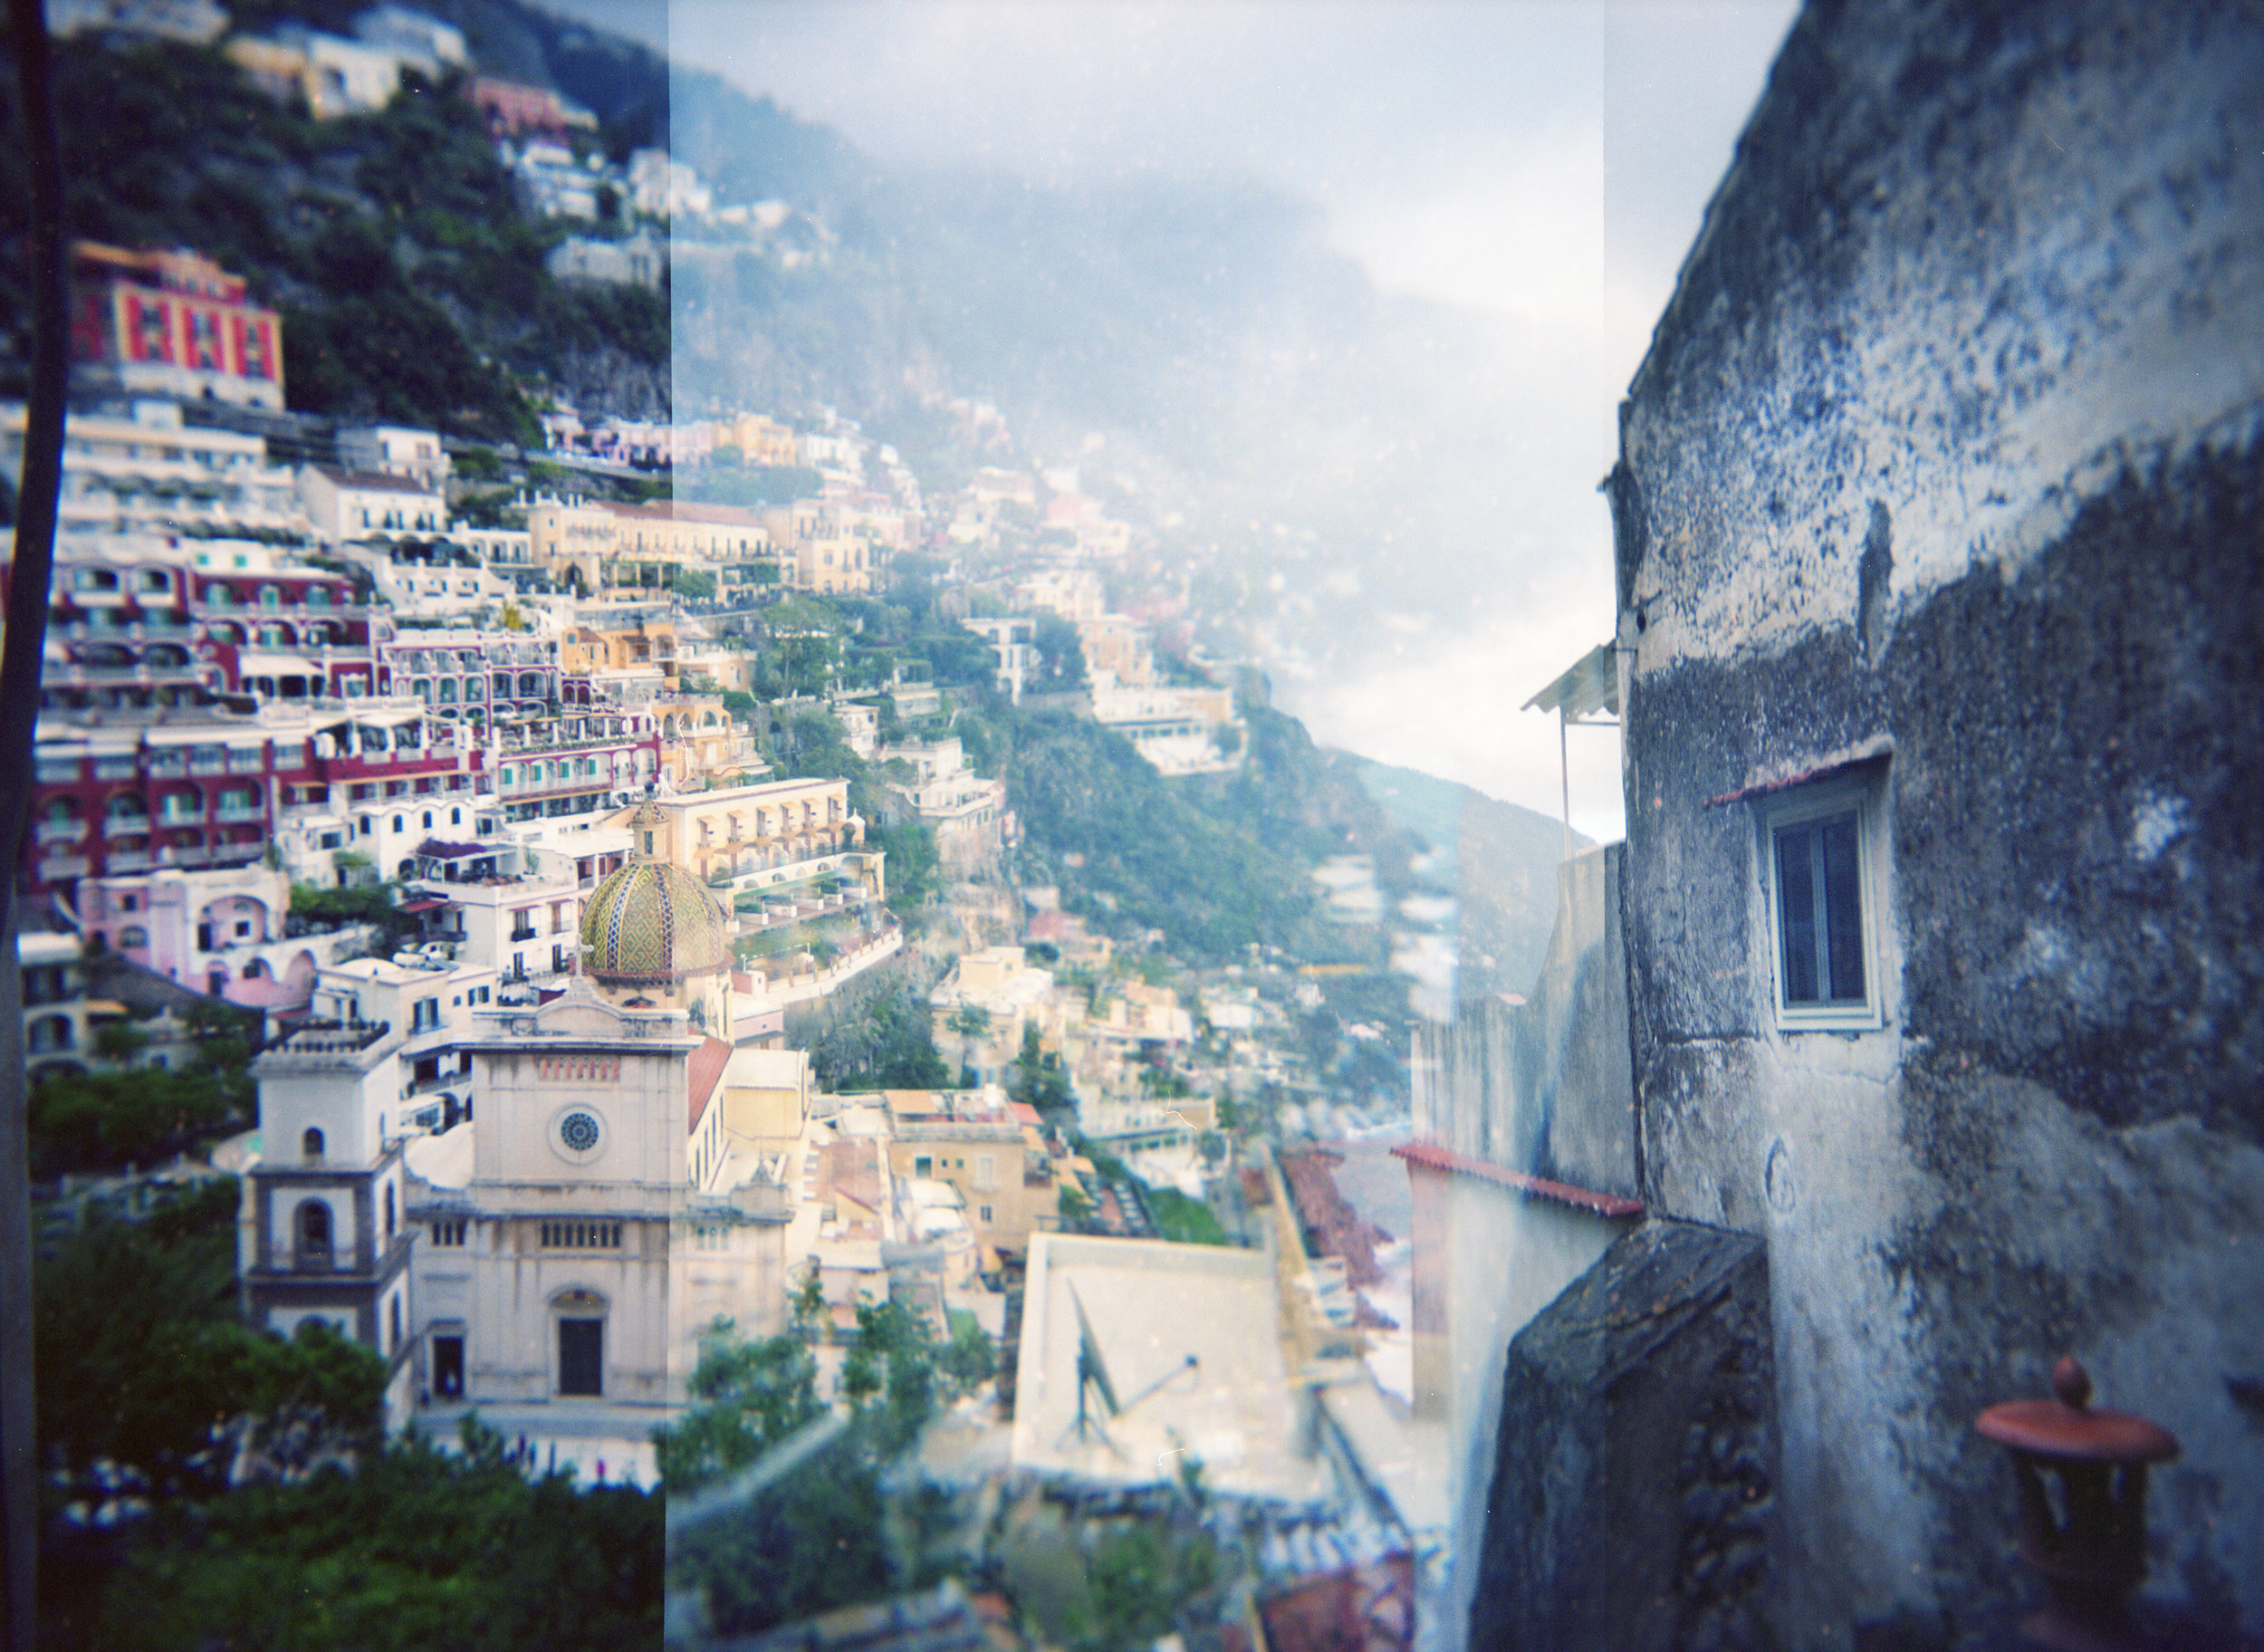 Positano, Double Exposure